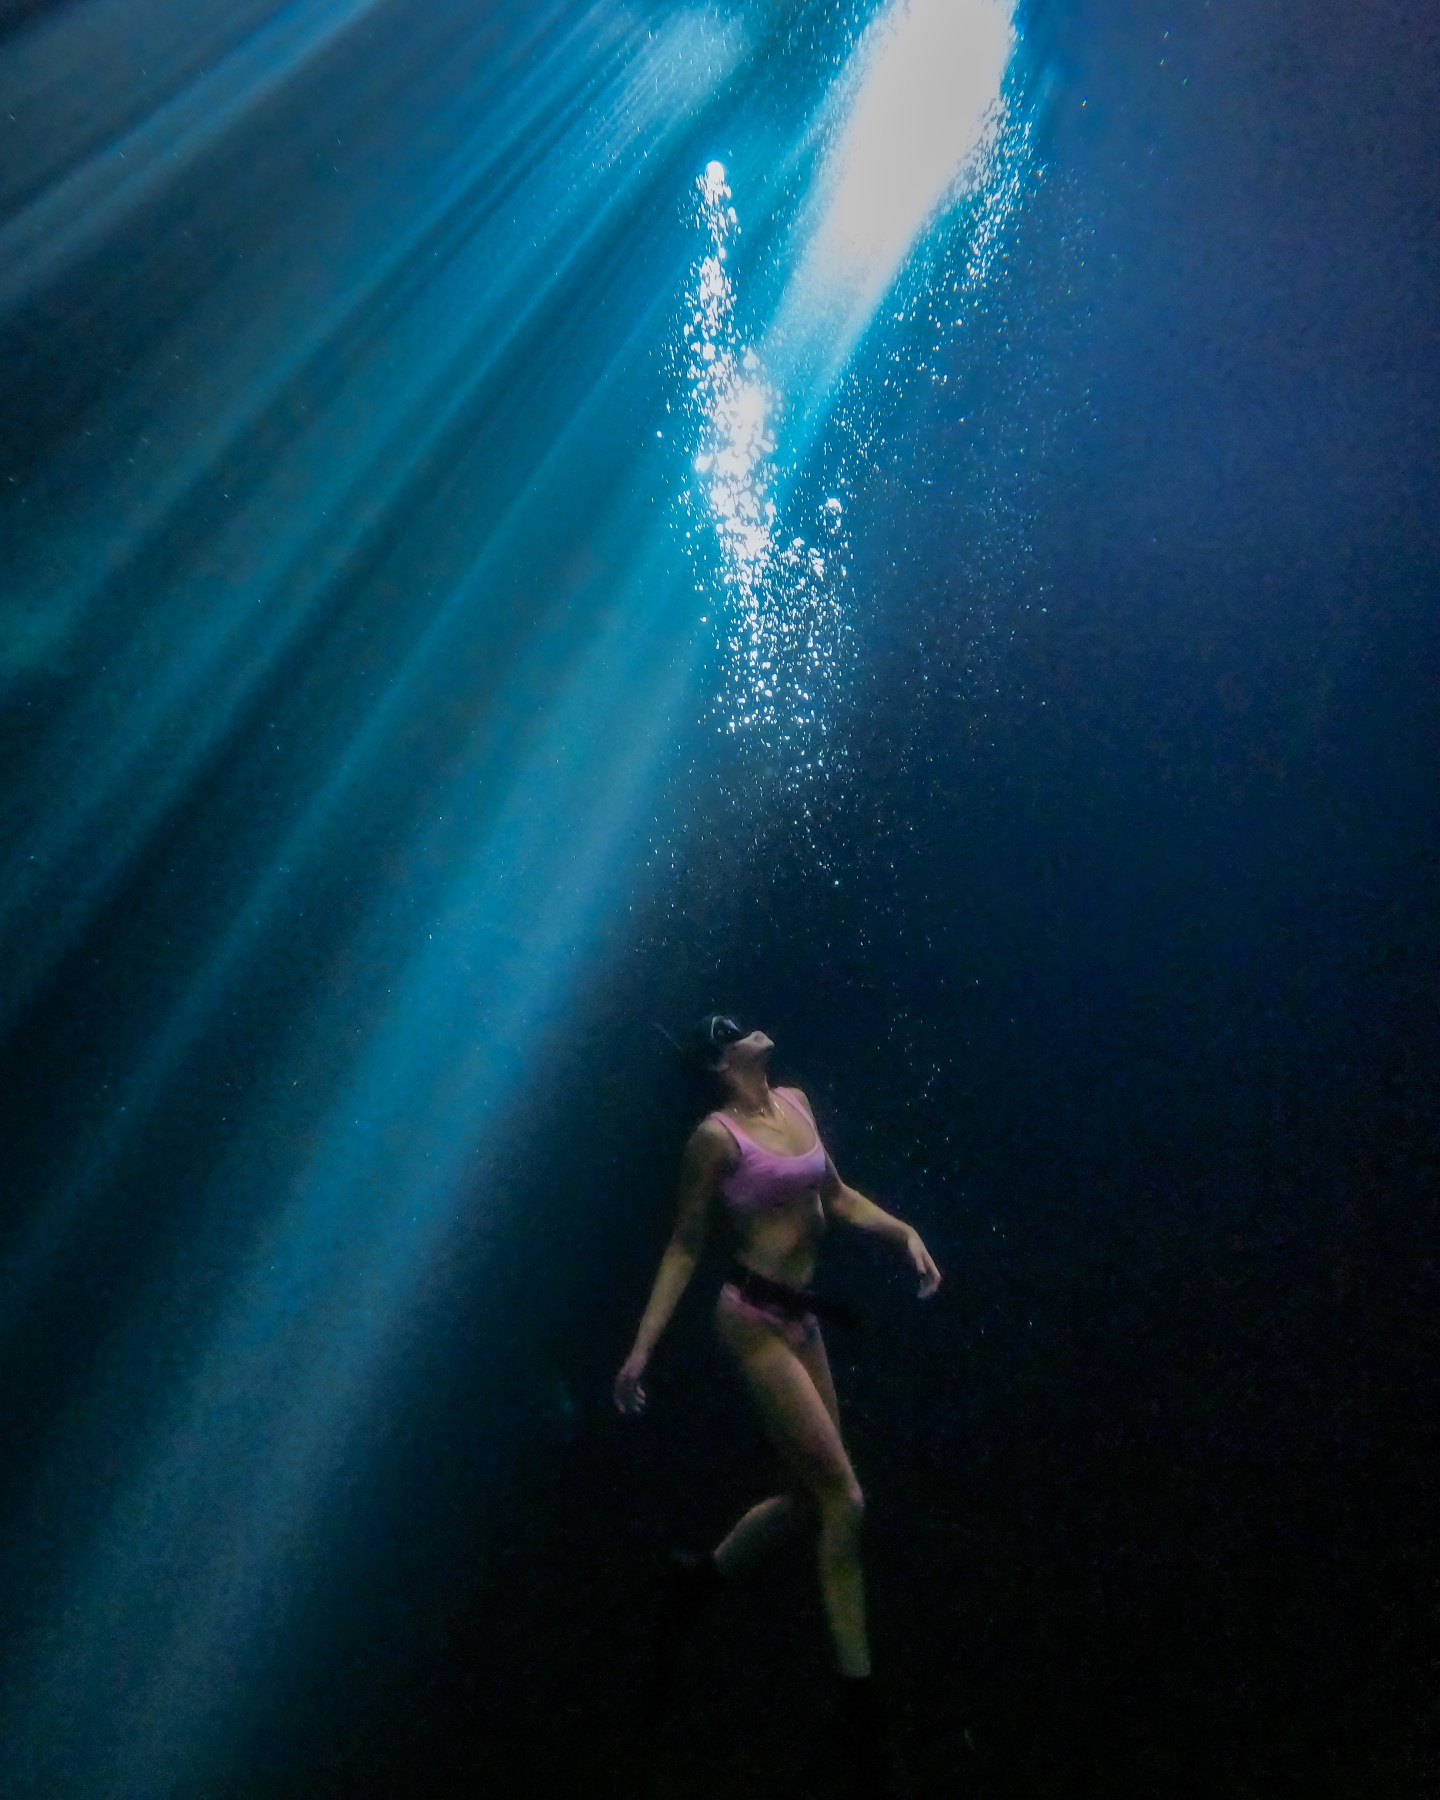 Kin-Ha Cenote Quintana Roo. This guide gives you tips for all of the best cenotes in Tulum and the best cenotes near Tulum including what to pack for the best Tulum cenotes and more. If you are looking for day trips from Tulum, check out the best cenotes in Quintana Roo and best cenotes in Yucatan for ideas!   Tulum cenotes photography   cenotes Mexico tulum   cenotes tulum riviera maya   best cenotes in quintana roo   cenotes quintana roo   cenotes in playa del carmen